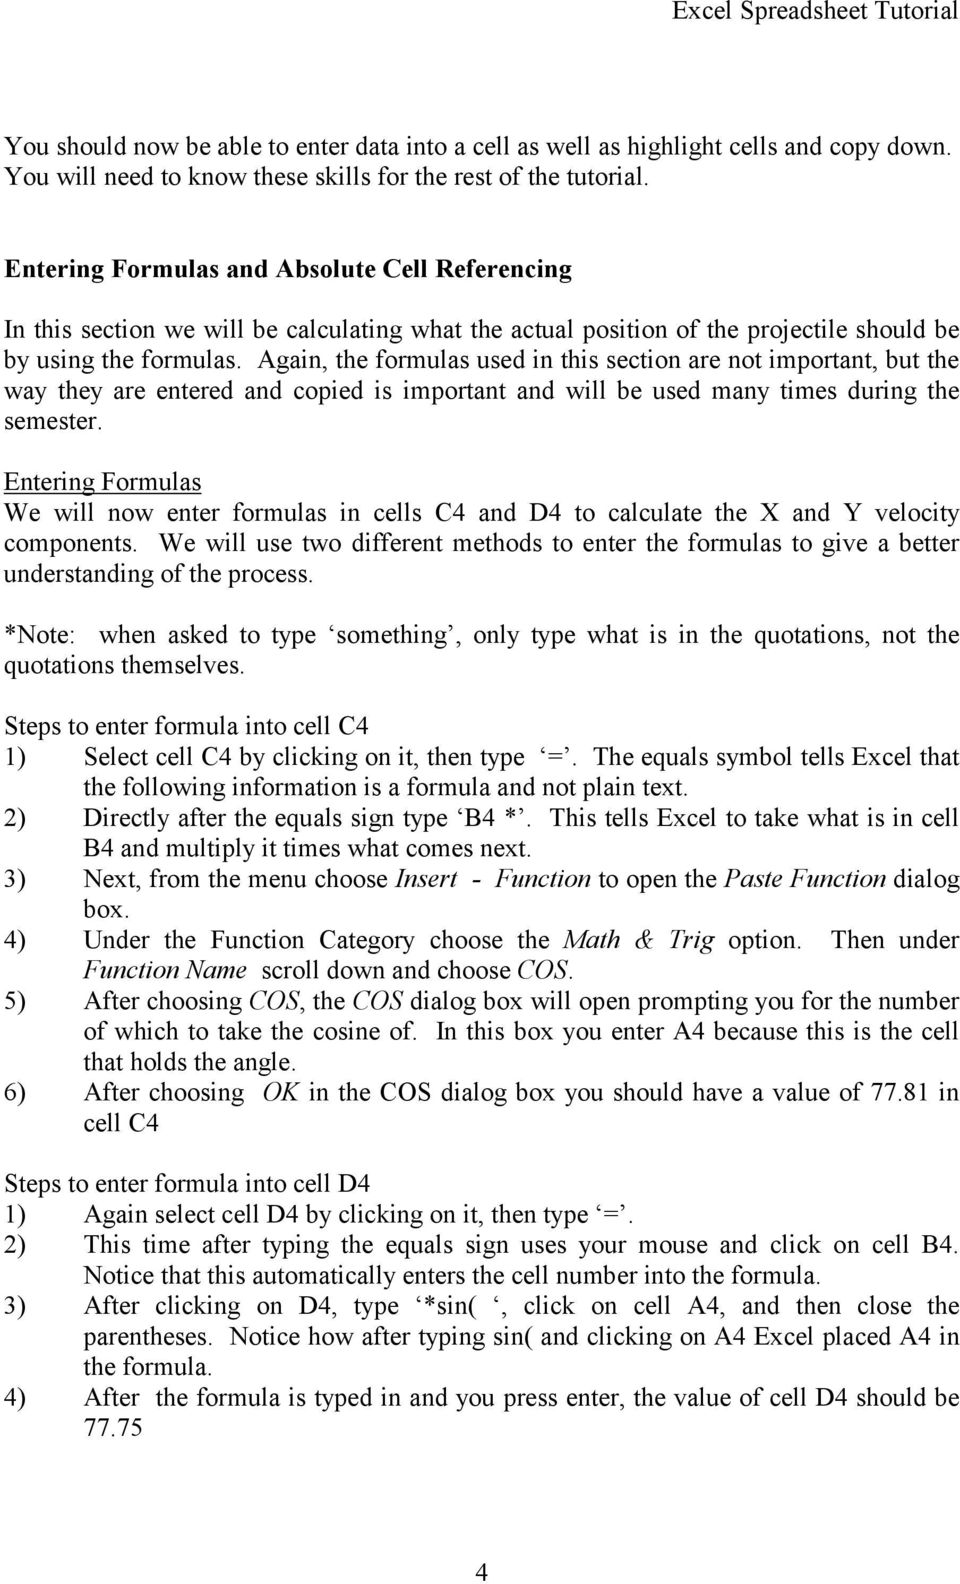 Again, the formulas used in this section are not important, but the way they are entered and copied is important and will be used many times during the semester.